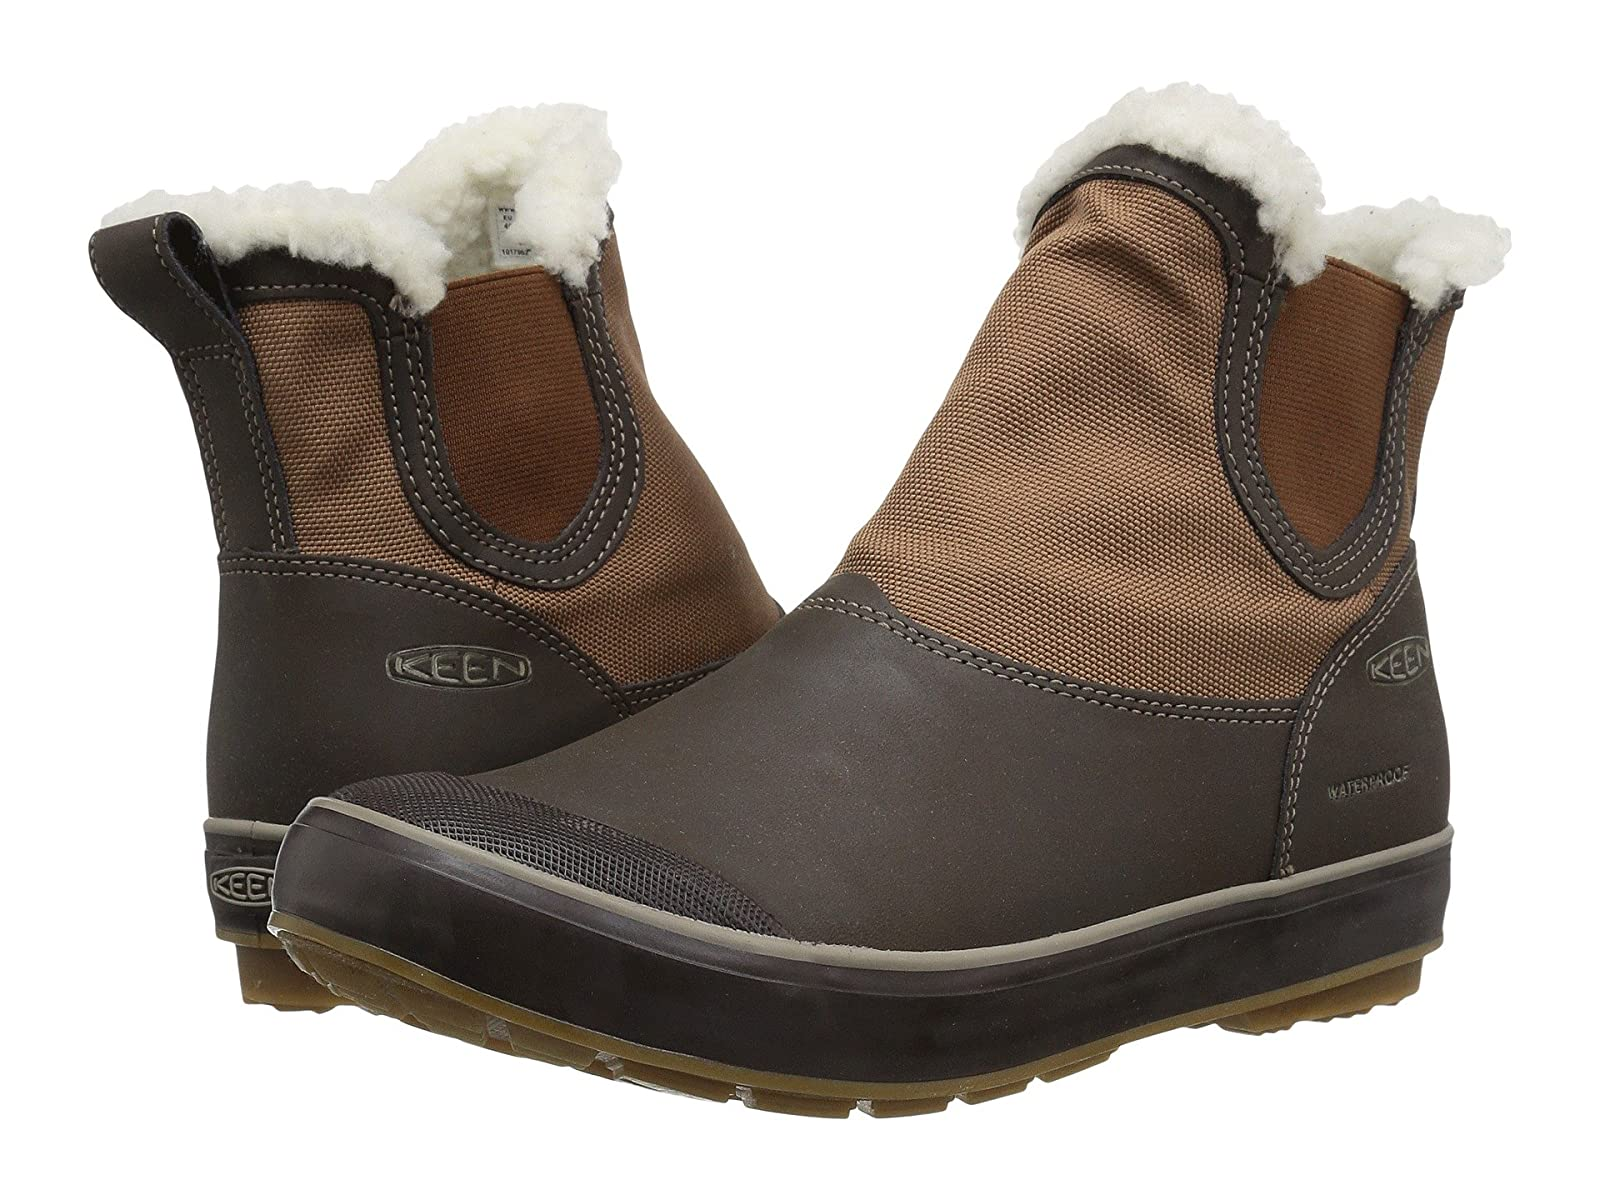 Keen Elsa Chelsea WaterproofCheap and distinctive eye-catching shoes